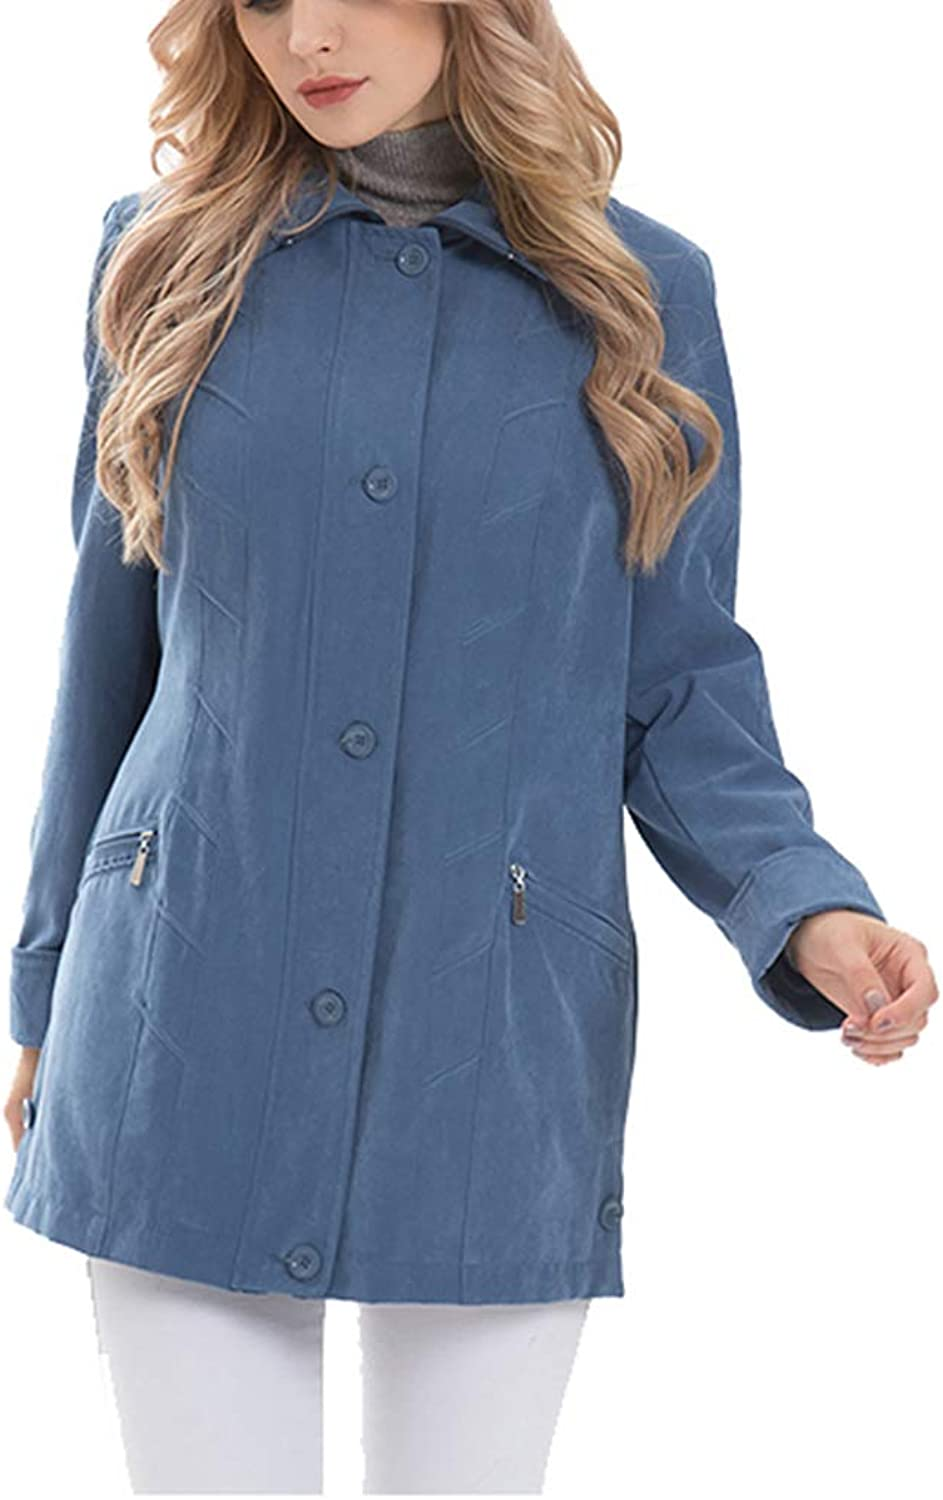 Saborz Women's Lightweight Jacket Autumn Ladies Coats Micro Moss Classic Jacket Outerwear